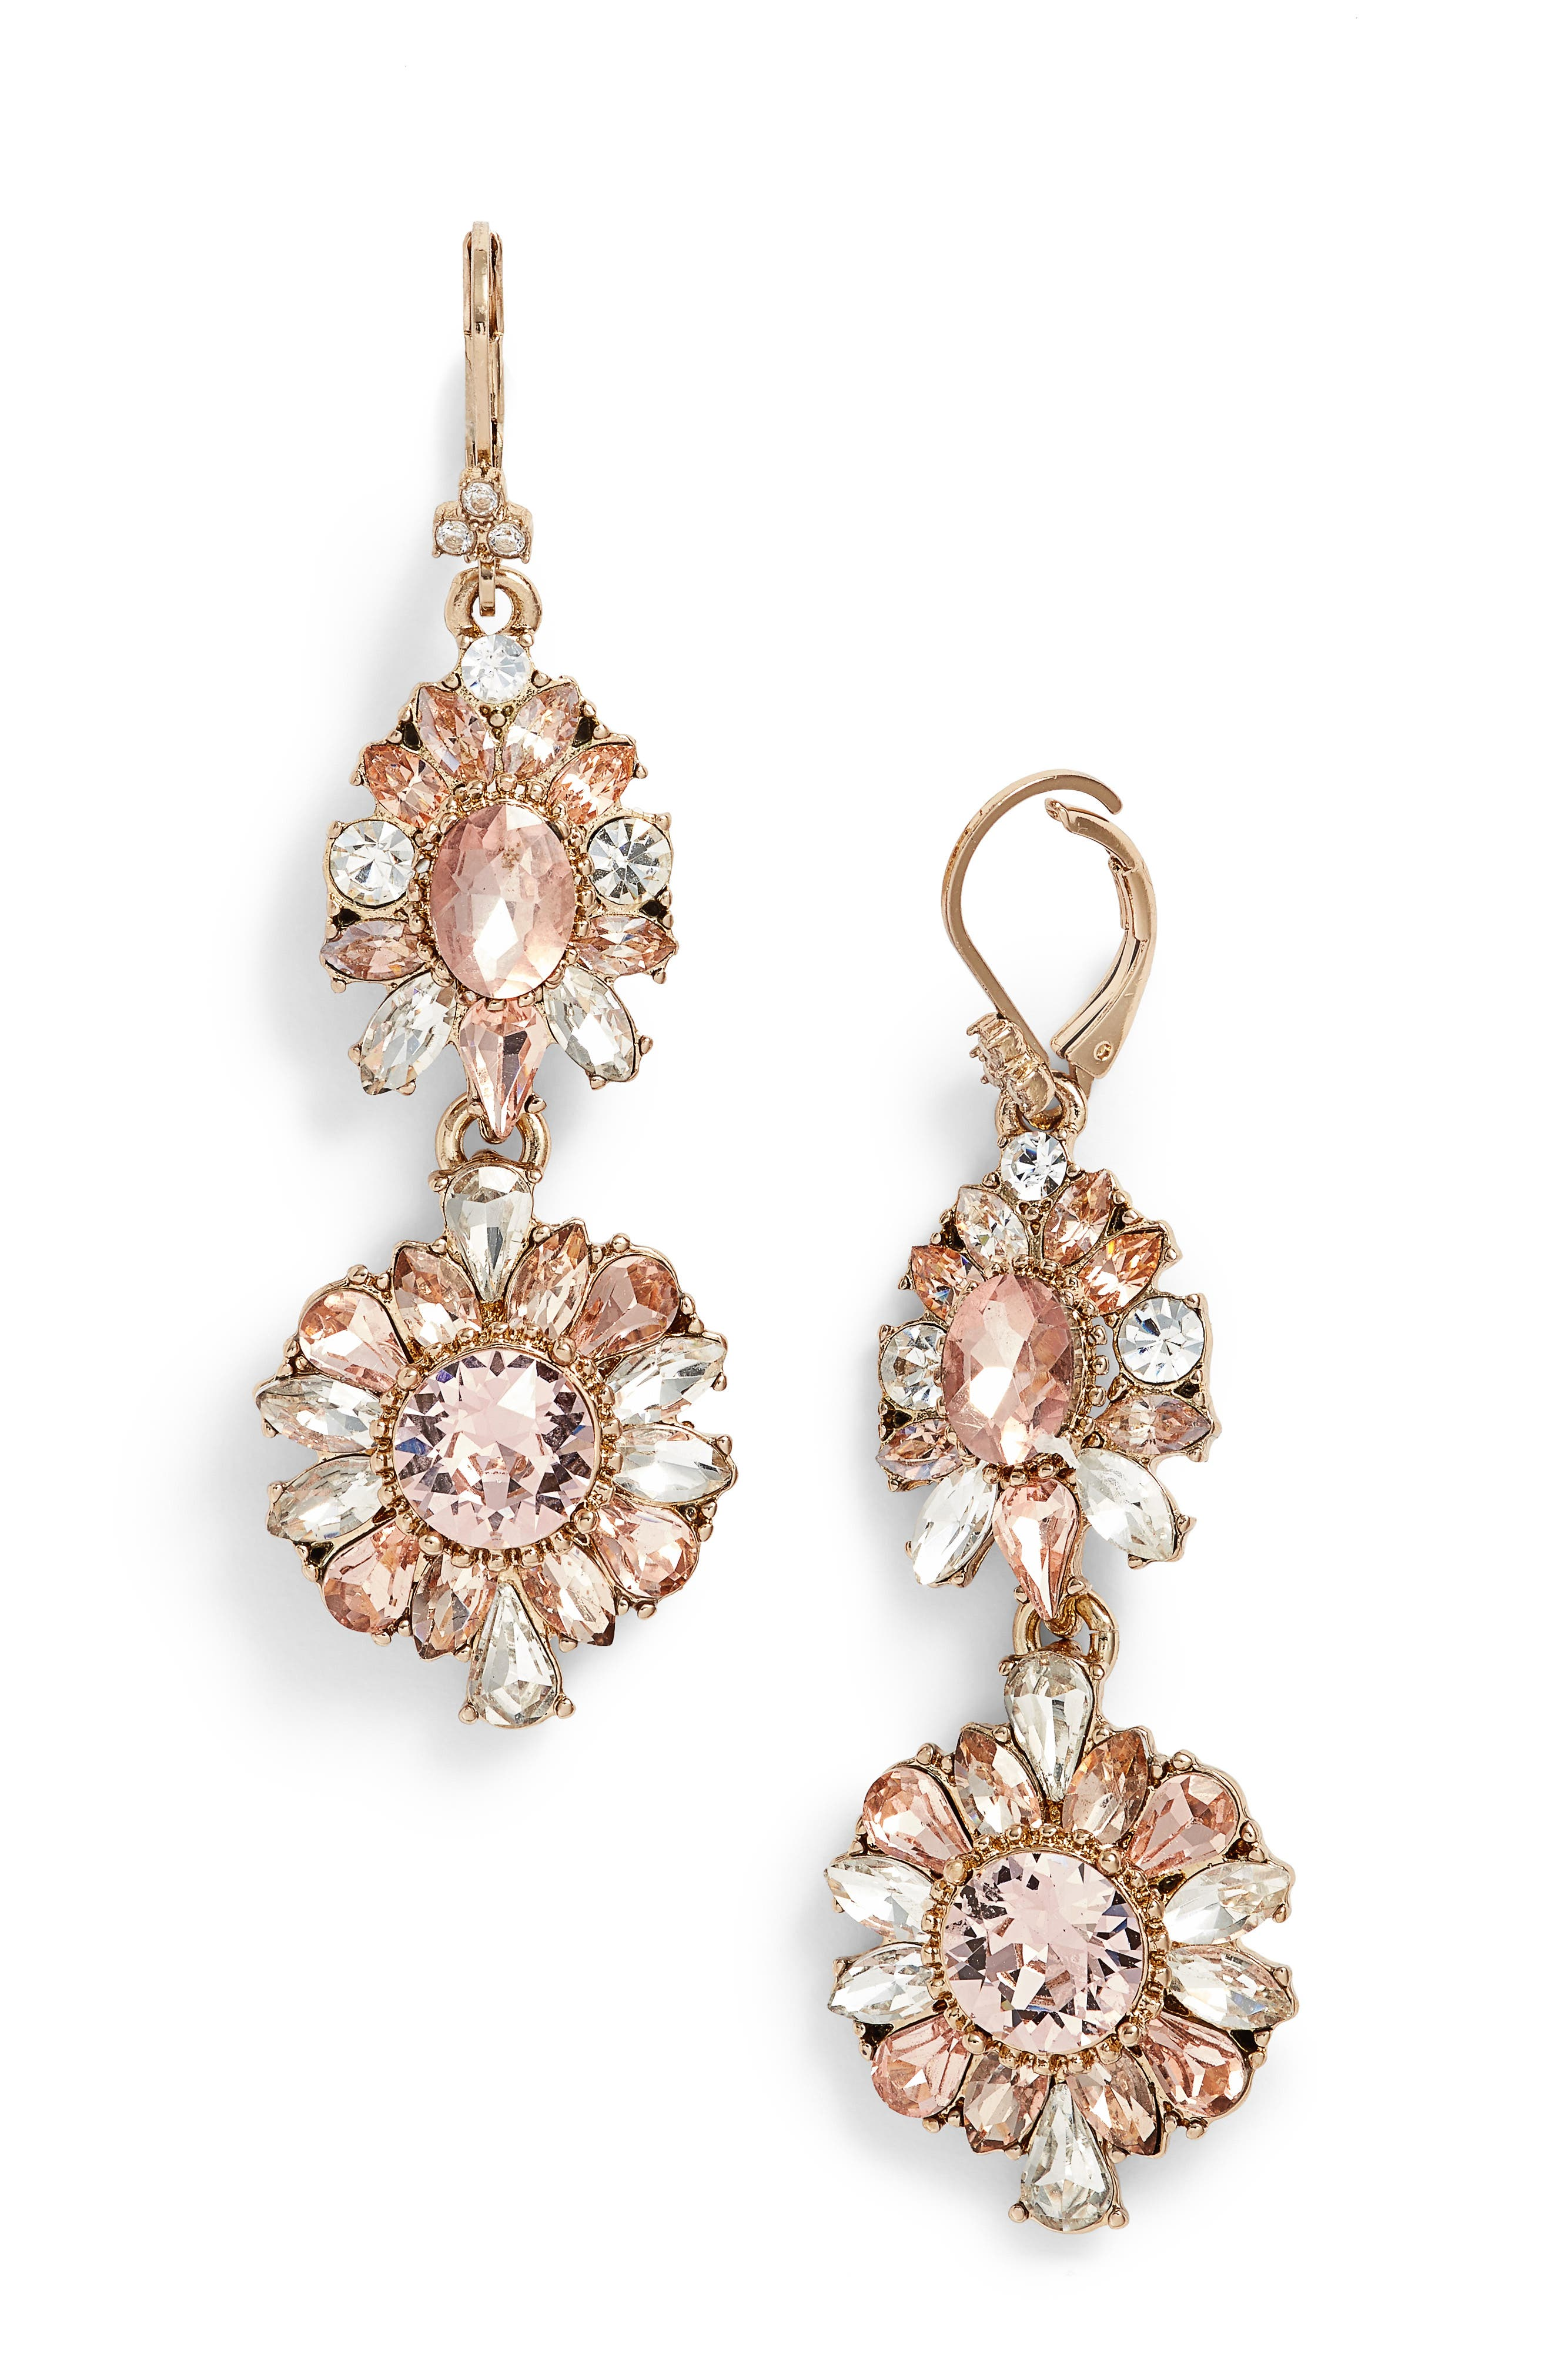 Double Drop Crystal Earrings,                         Main,                         color, Gold/ Vintage Rose